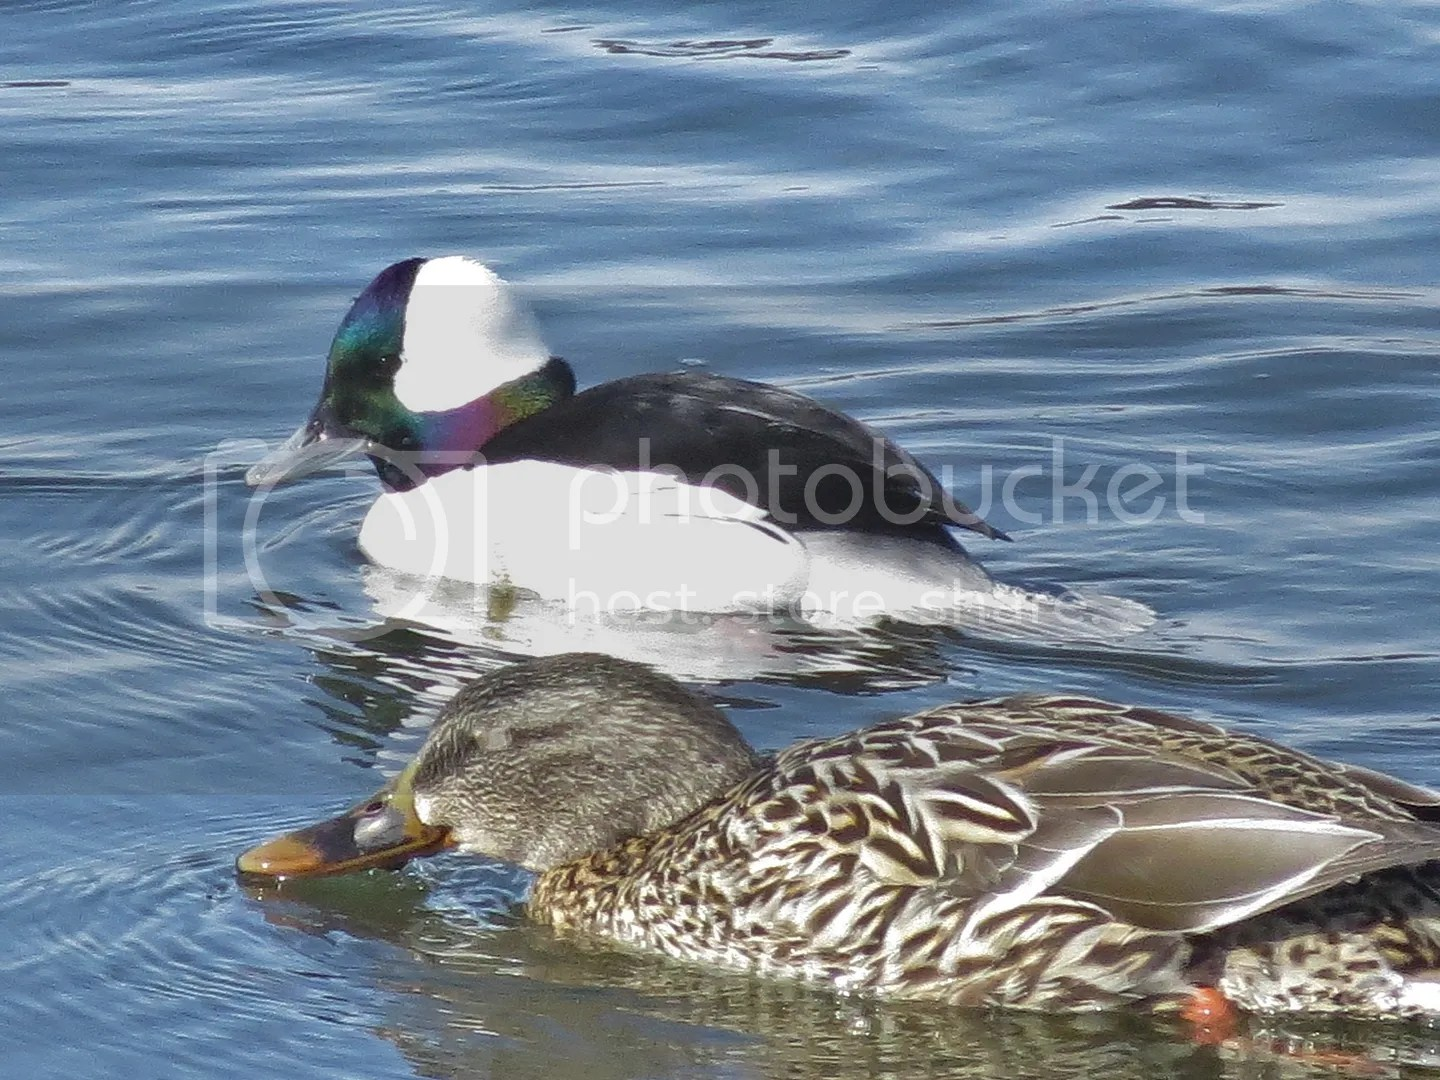 Bufflehead Drake with Mallard photo IMG_7935_zpsl44kt7ms.jpg